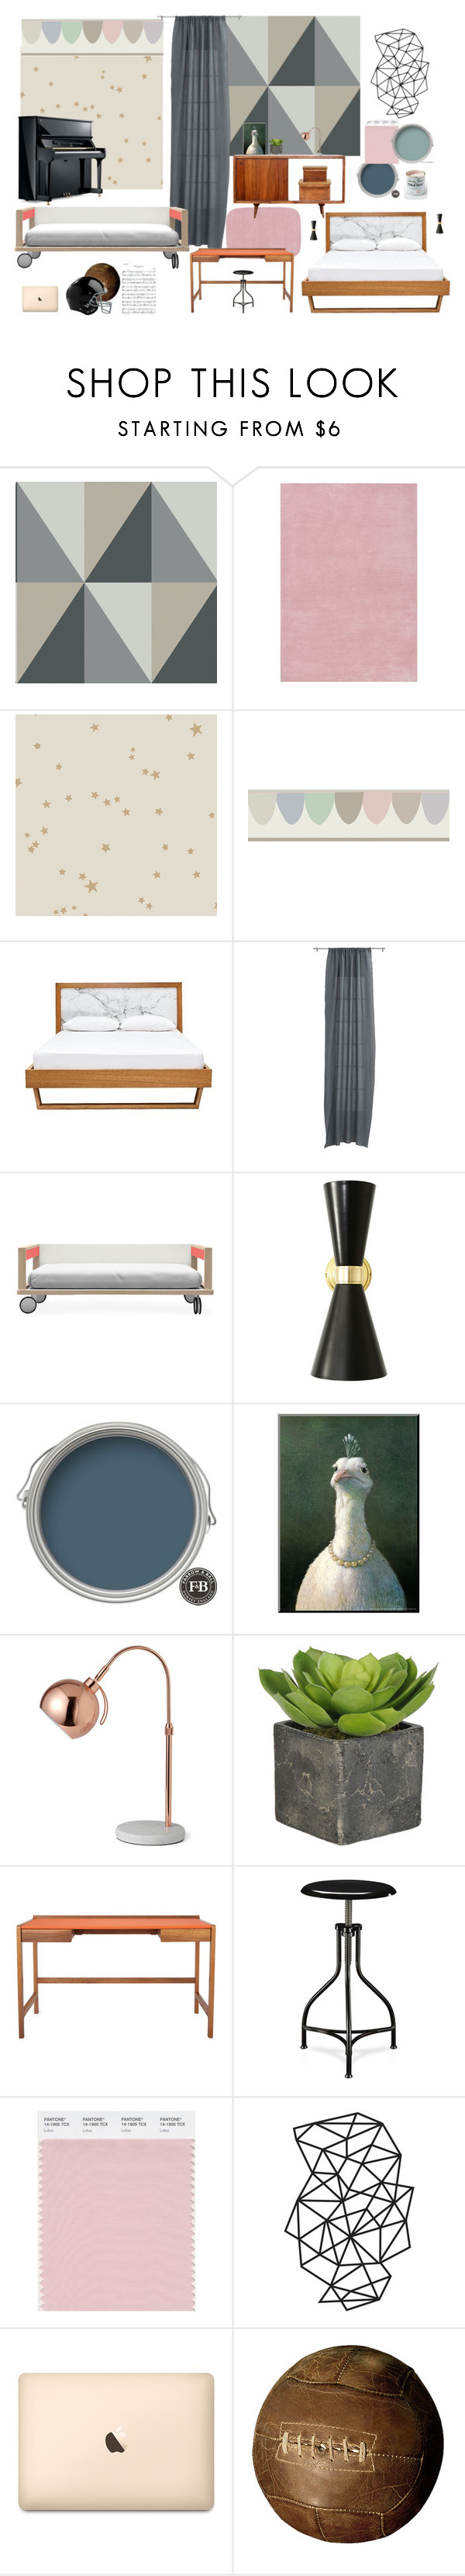 """bedroom+girl/boy room"" by artforma on Polyvore featuring interior, interiors, interior design, дом, home decor, interior decorating, Cole & Son, CB2, Kay + Stemmer и Rawlings"